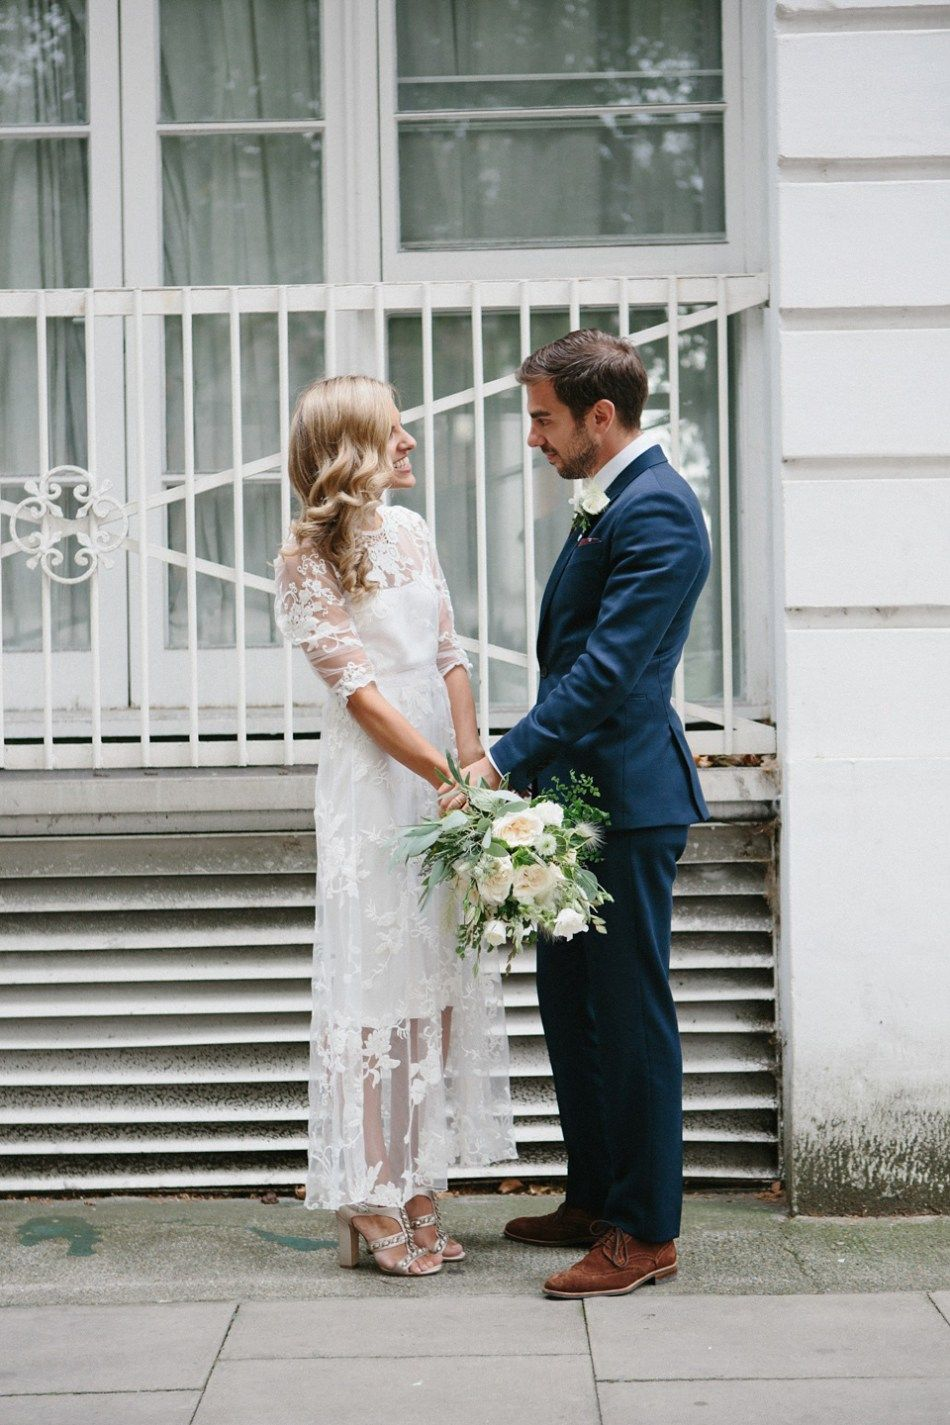 A vintage gown for a stylish lowkey and relaxed london pub wedding